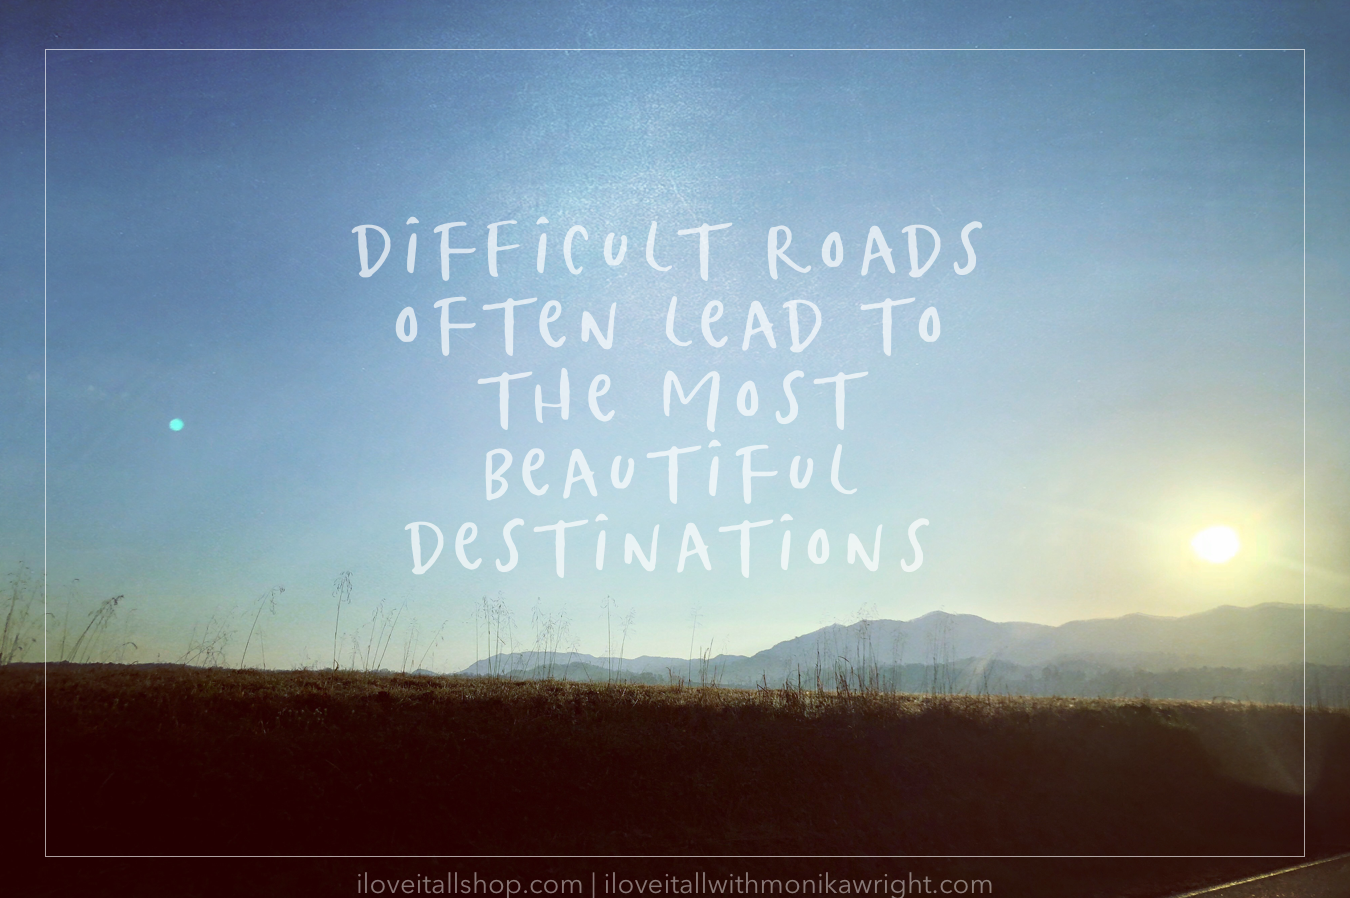 #difficult roads #beautiful destinations #mantra #good words #mountains #sunrise #smoky mountains #sky